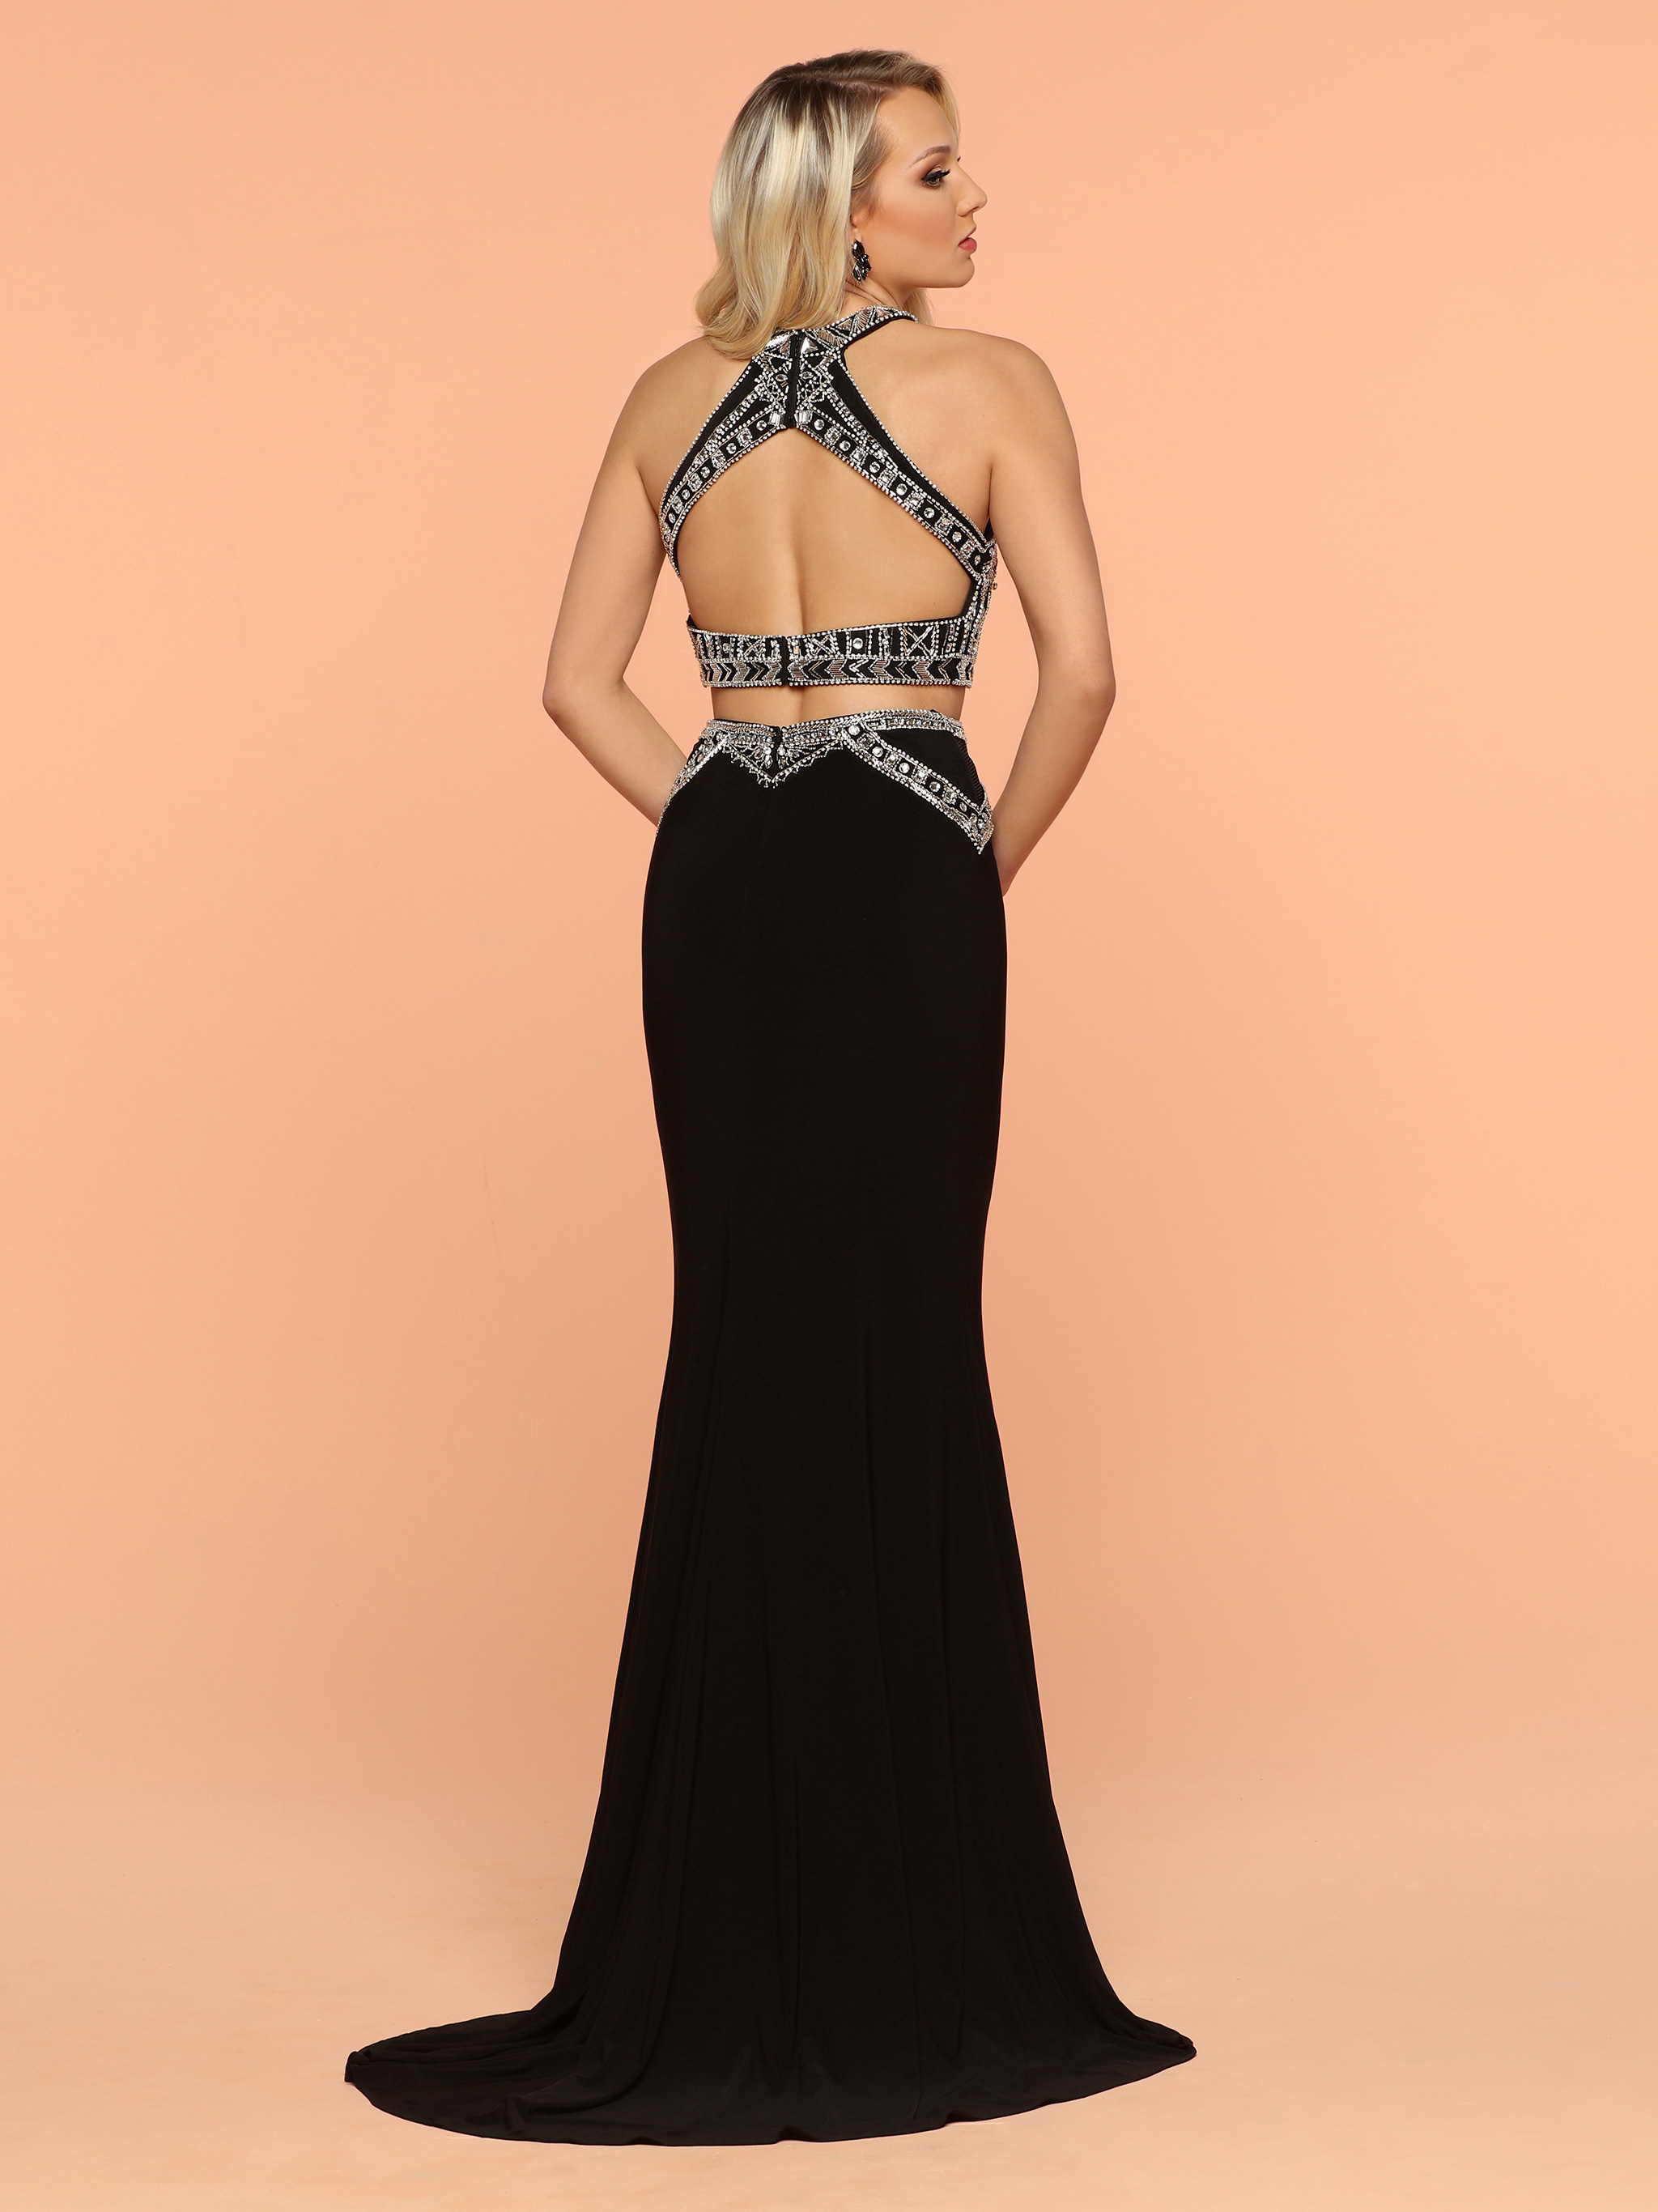 Image showing back view of style #71858